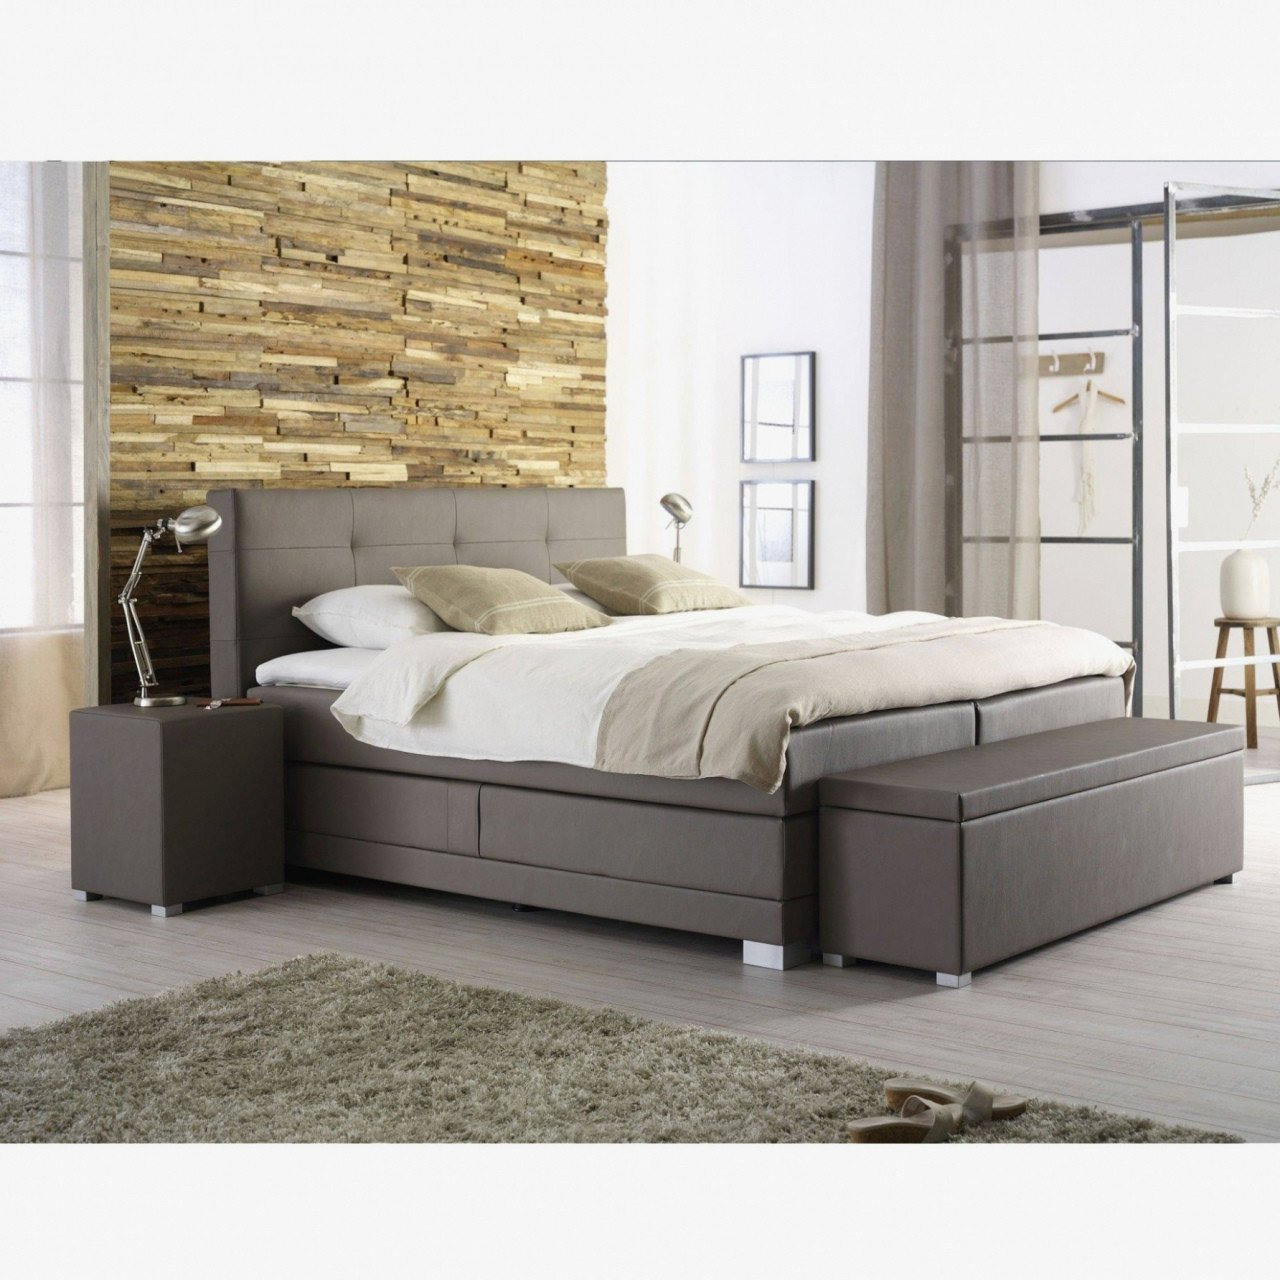 High End Bedroom Furniture New Bed with Drawers Under — Procura Home Blog